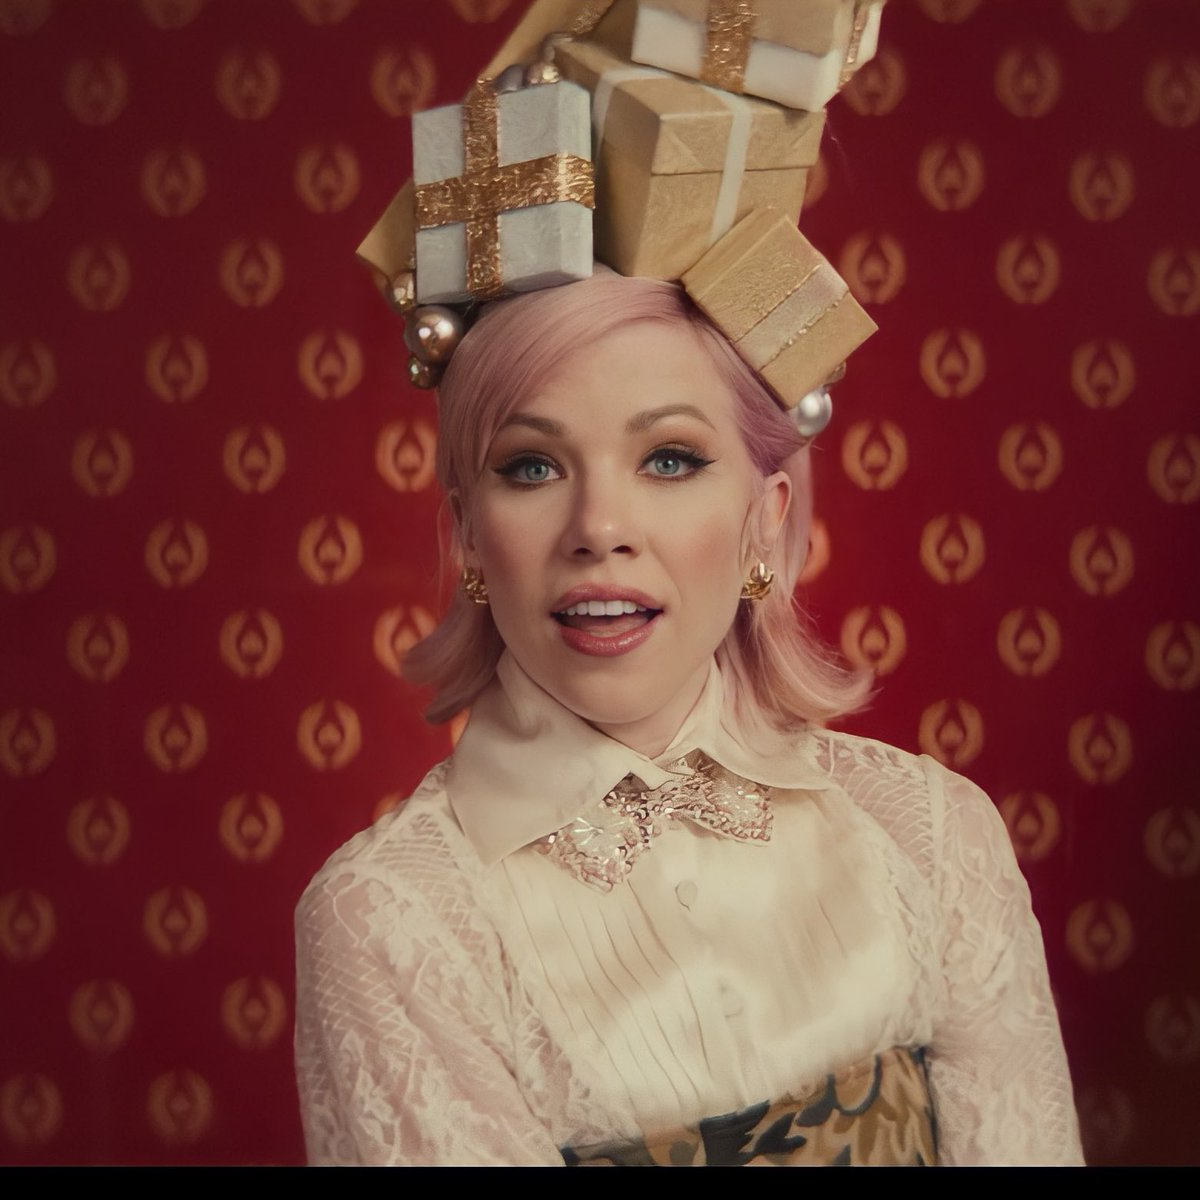 @carlyraejepsen WE LOVE THE NEW VIDEO QUEEN❤️